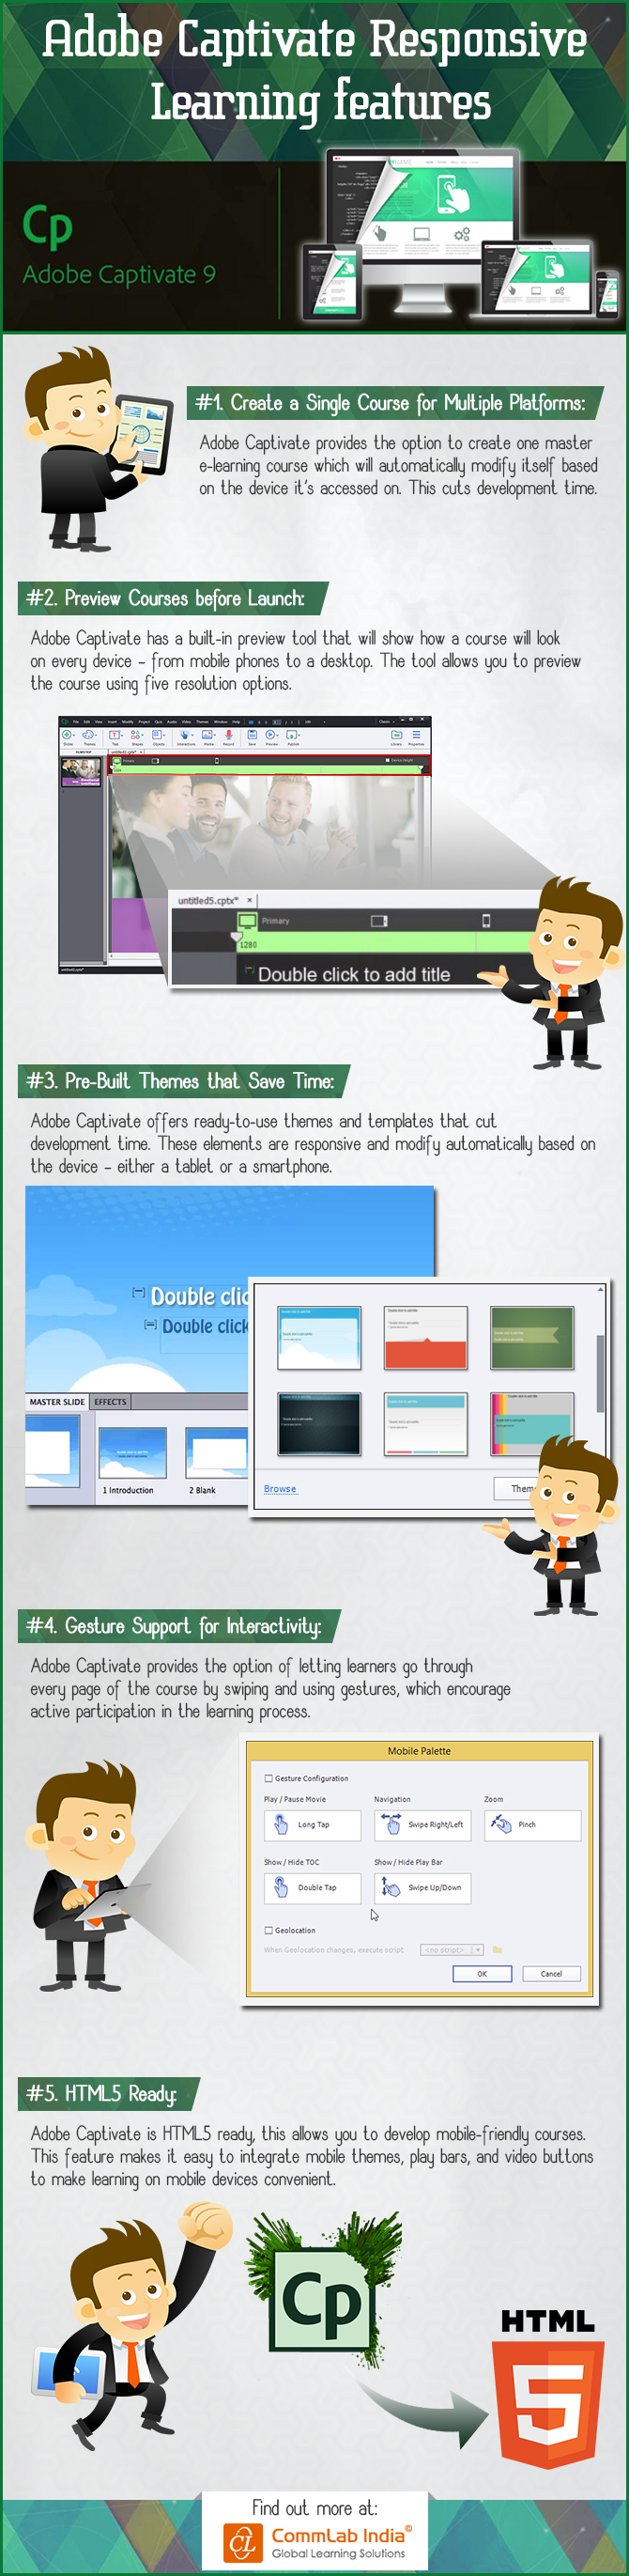 Adobe Captivate Responsive Learning Features [Infographic]